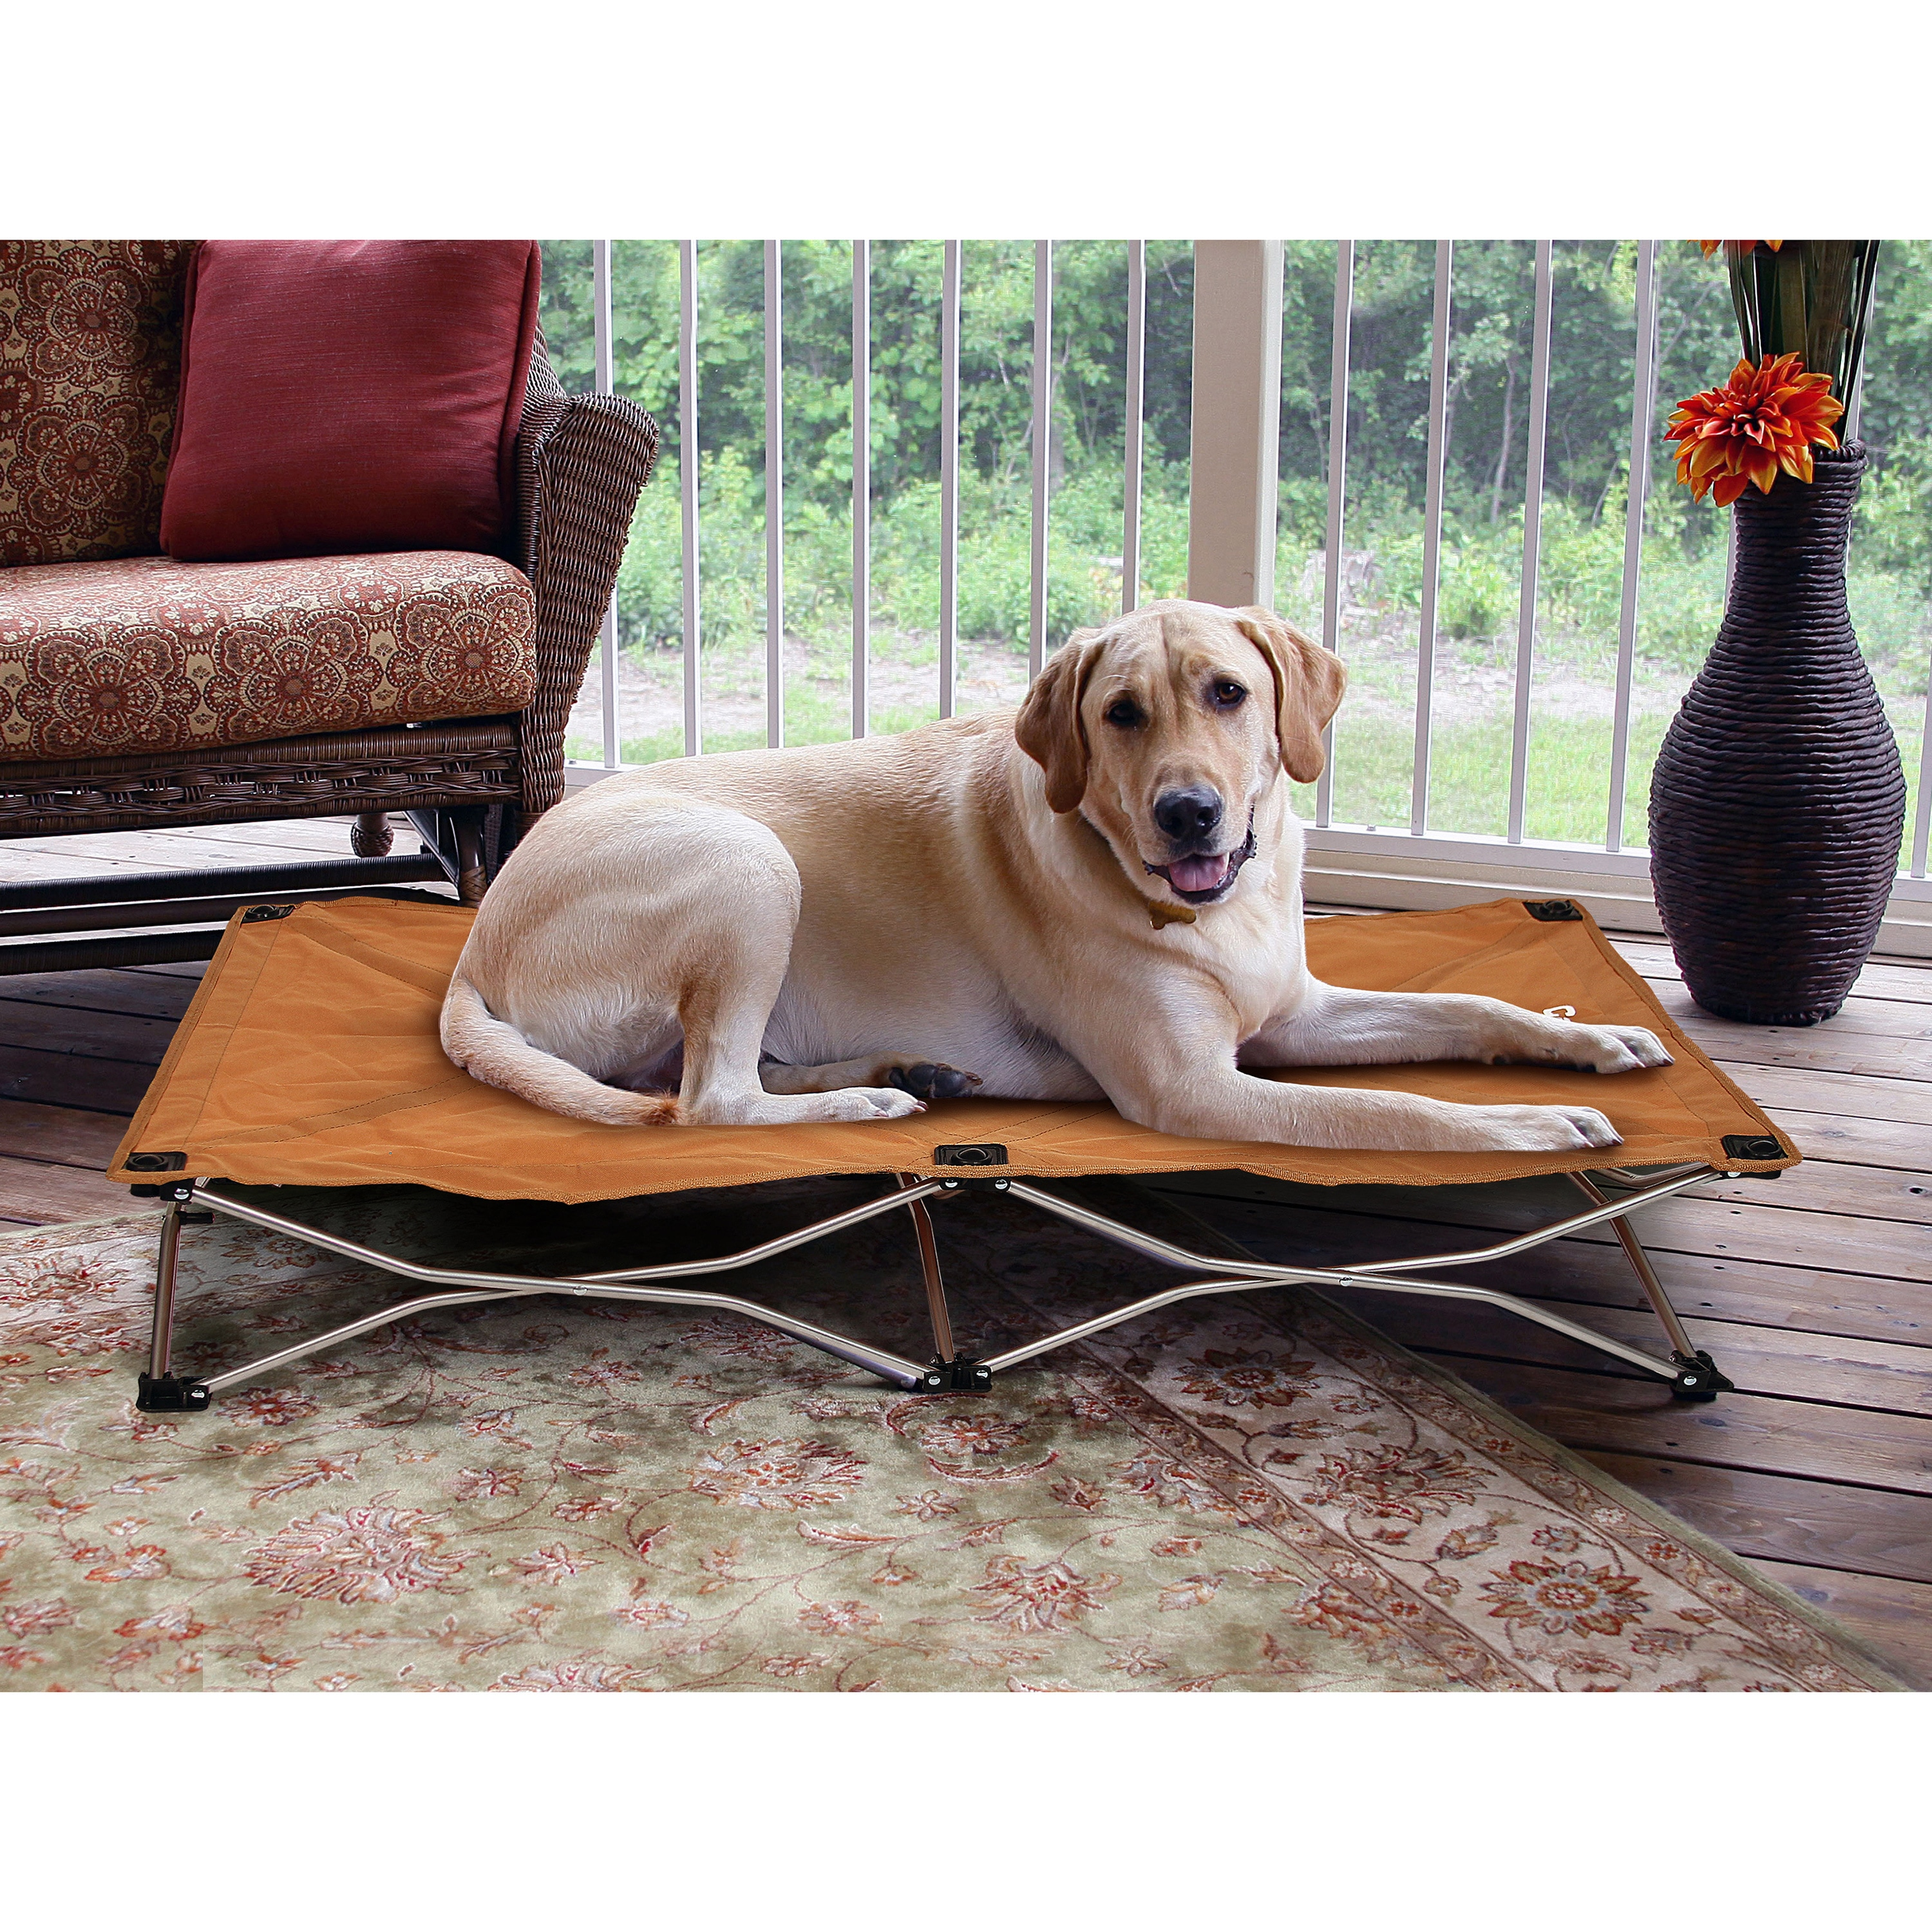 Buy Dog Beds Online At Overstock.com | Our Best Dog Beds U0026 Blankets Deals